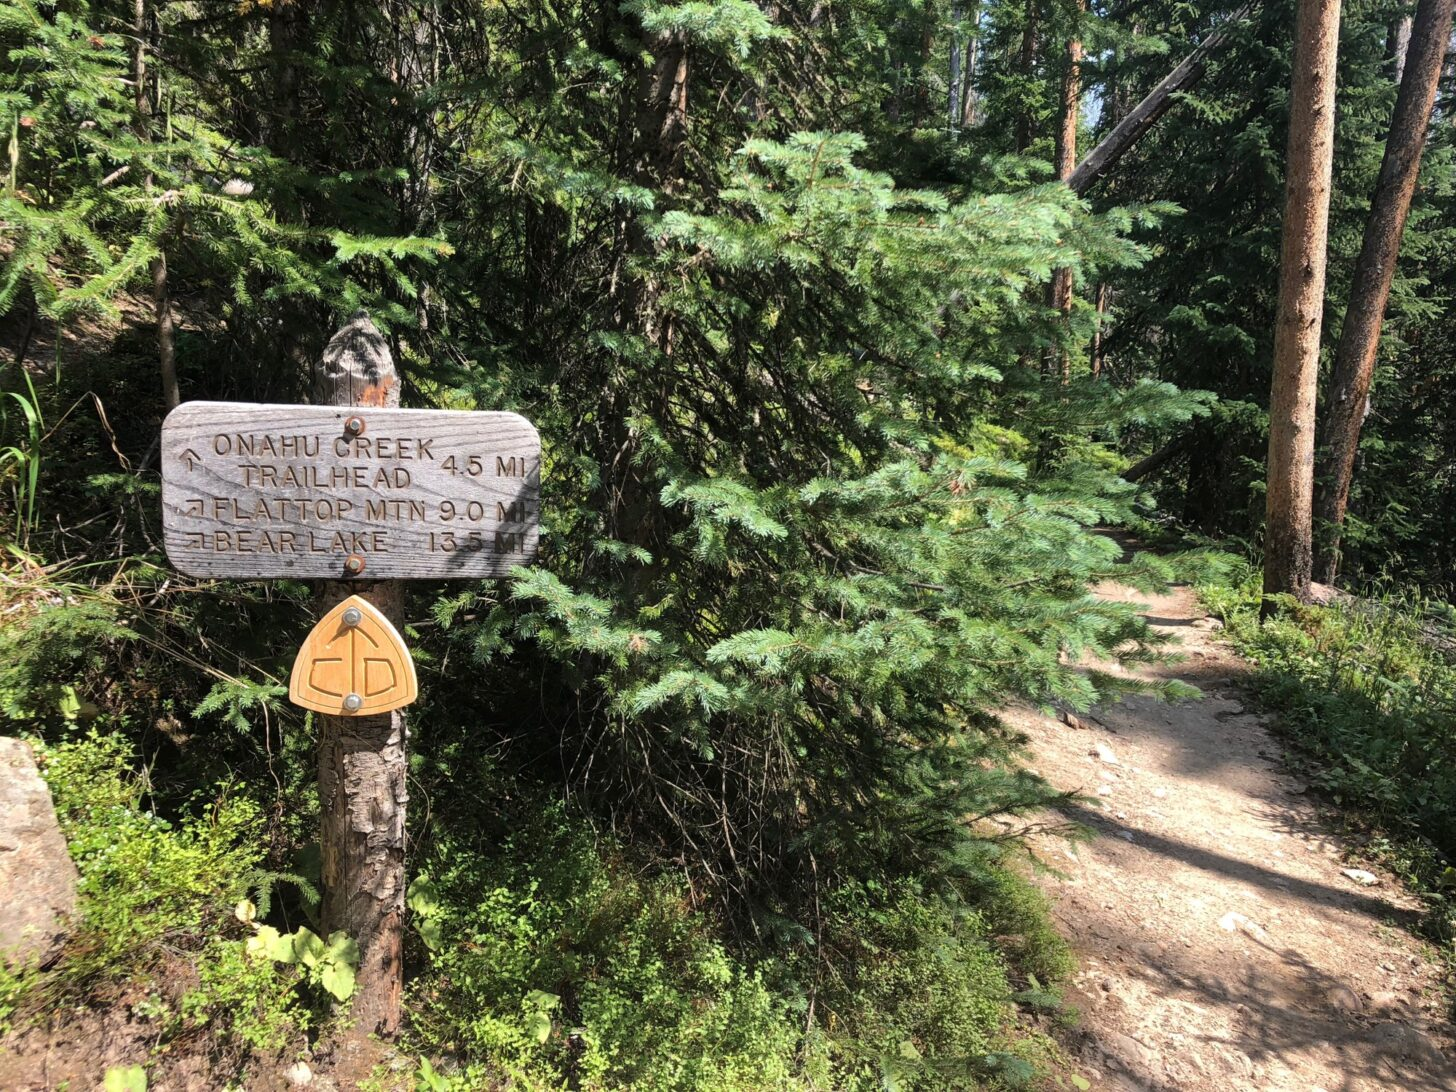 a trail sign at a trail junction. The sign has distances for various points along the trail.